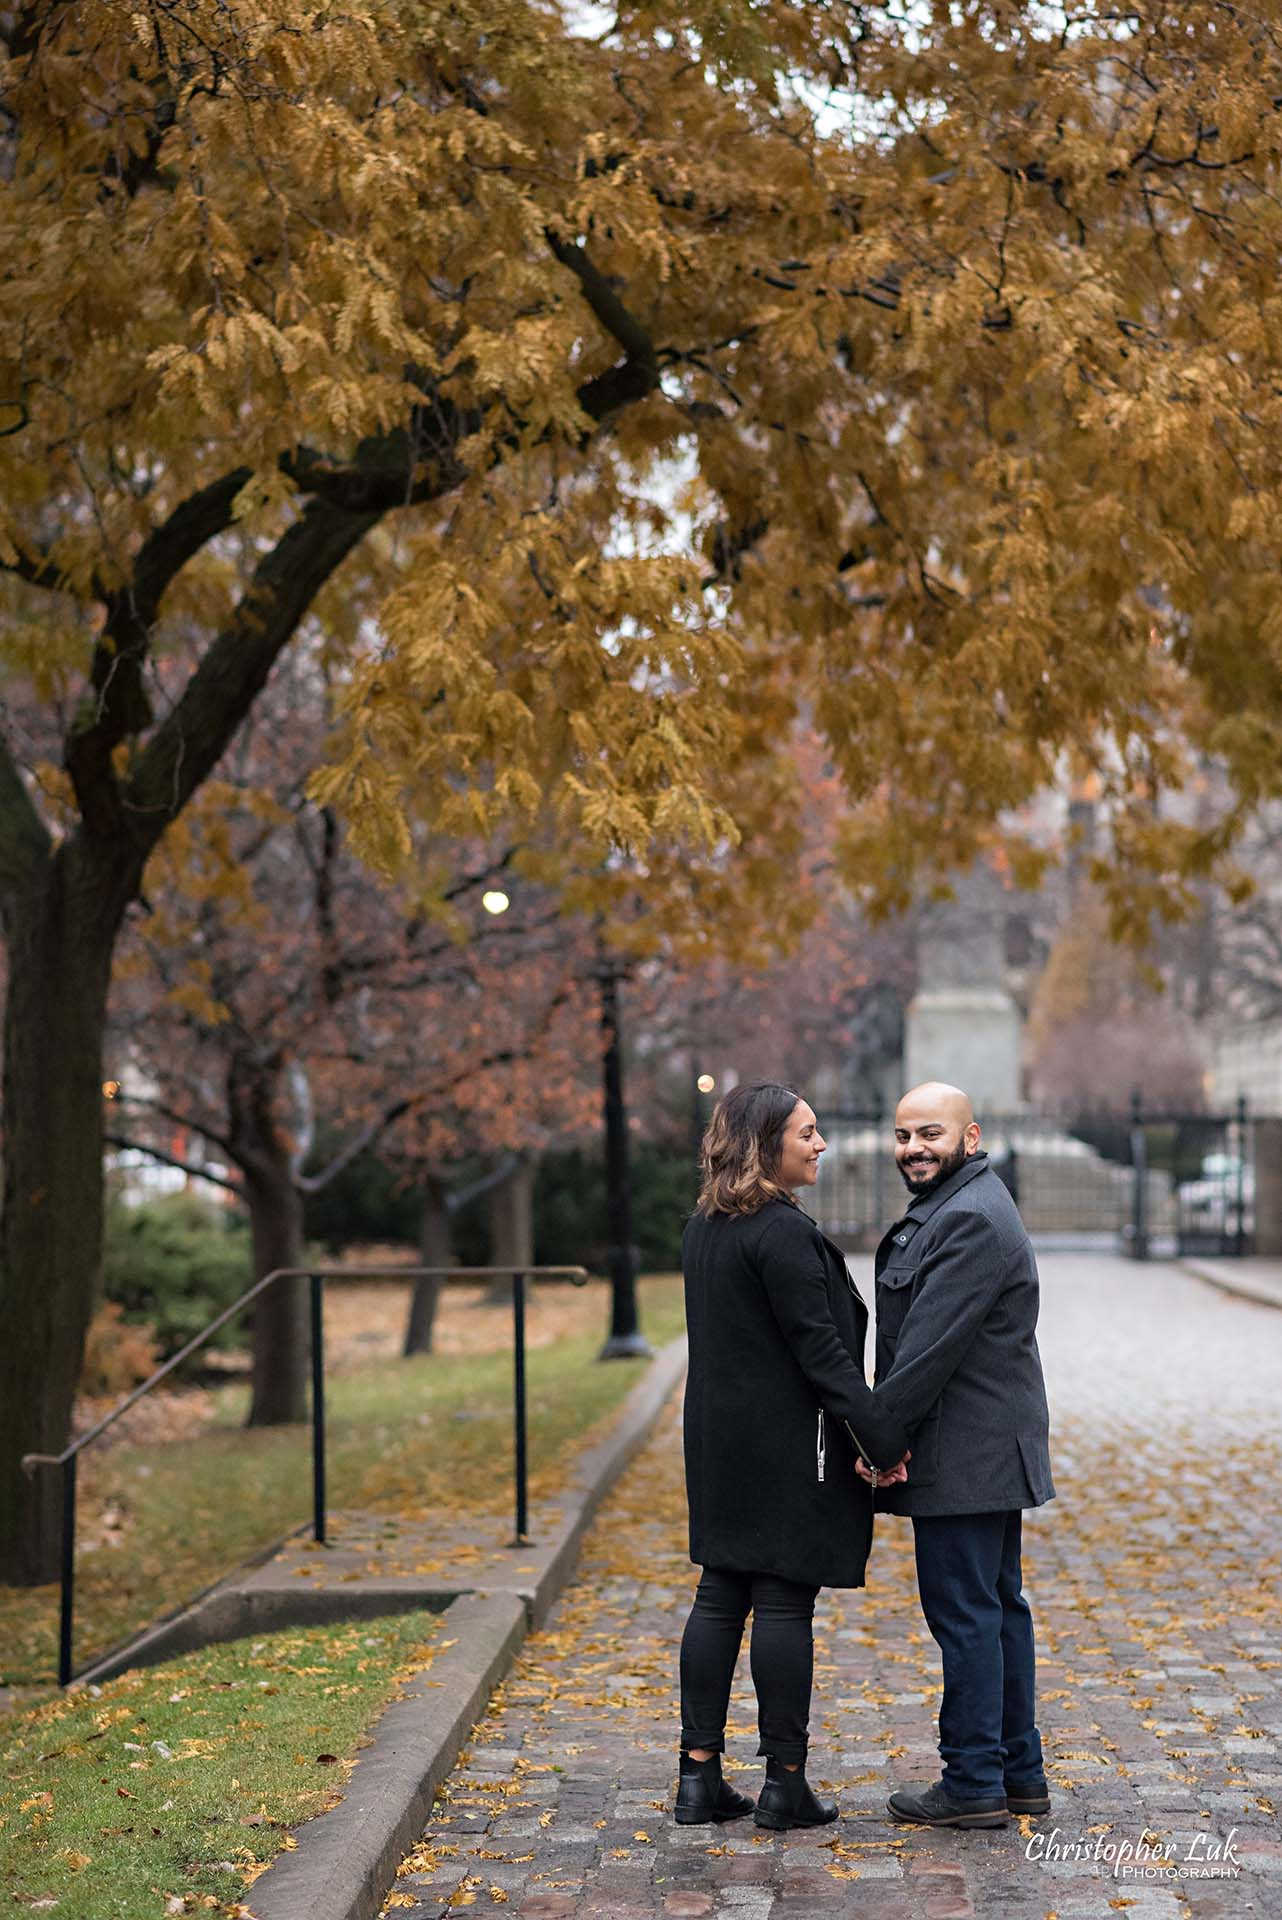 Christopher Luk Toronto Wedding Photographer - Toronto Osgoode Hall Surprise Proposal Engaged Engagement Will You Marry Me She Said Yes Natural Candid Photojournalistic - Fiancé Fiancée Bride Groom Walking Autumn Fall Leaves Him